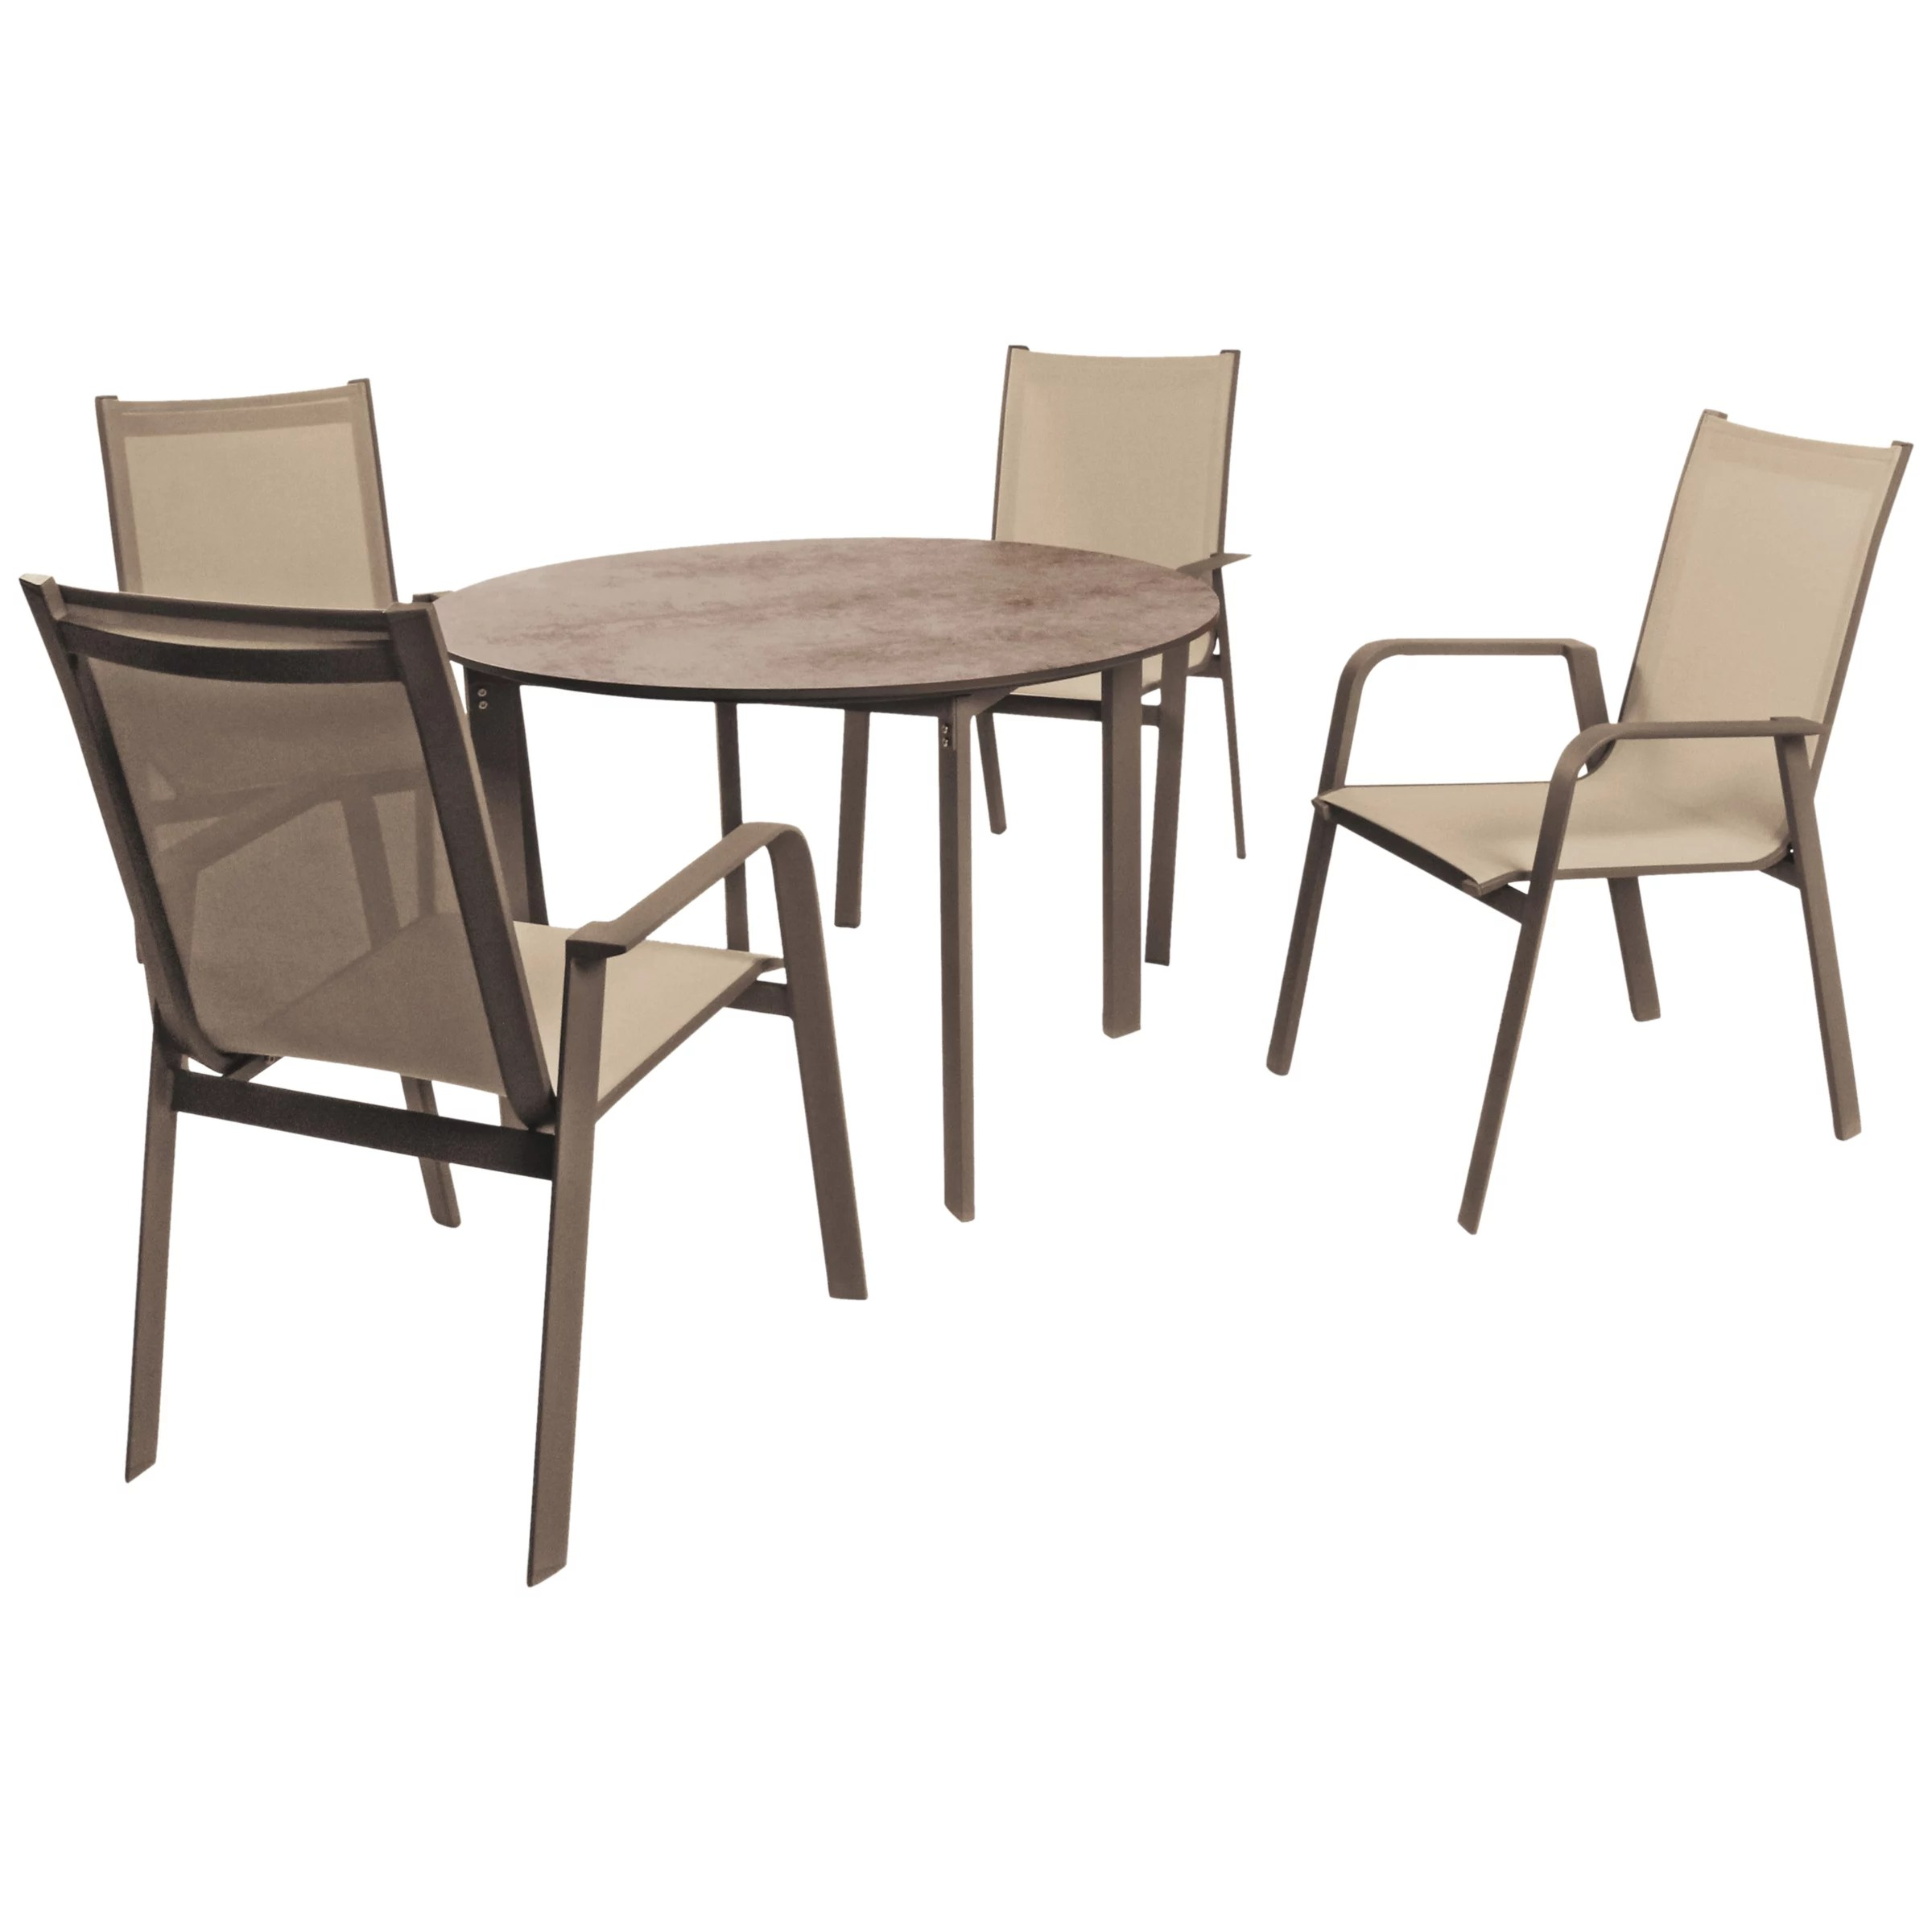 4 seater outdoor table and chairs wing chair covers ikea kettler milano garden set taupe